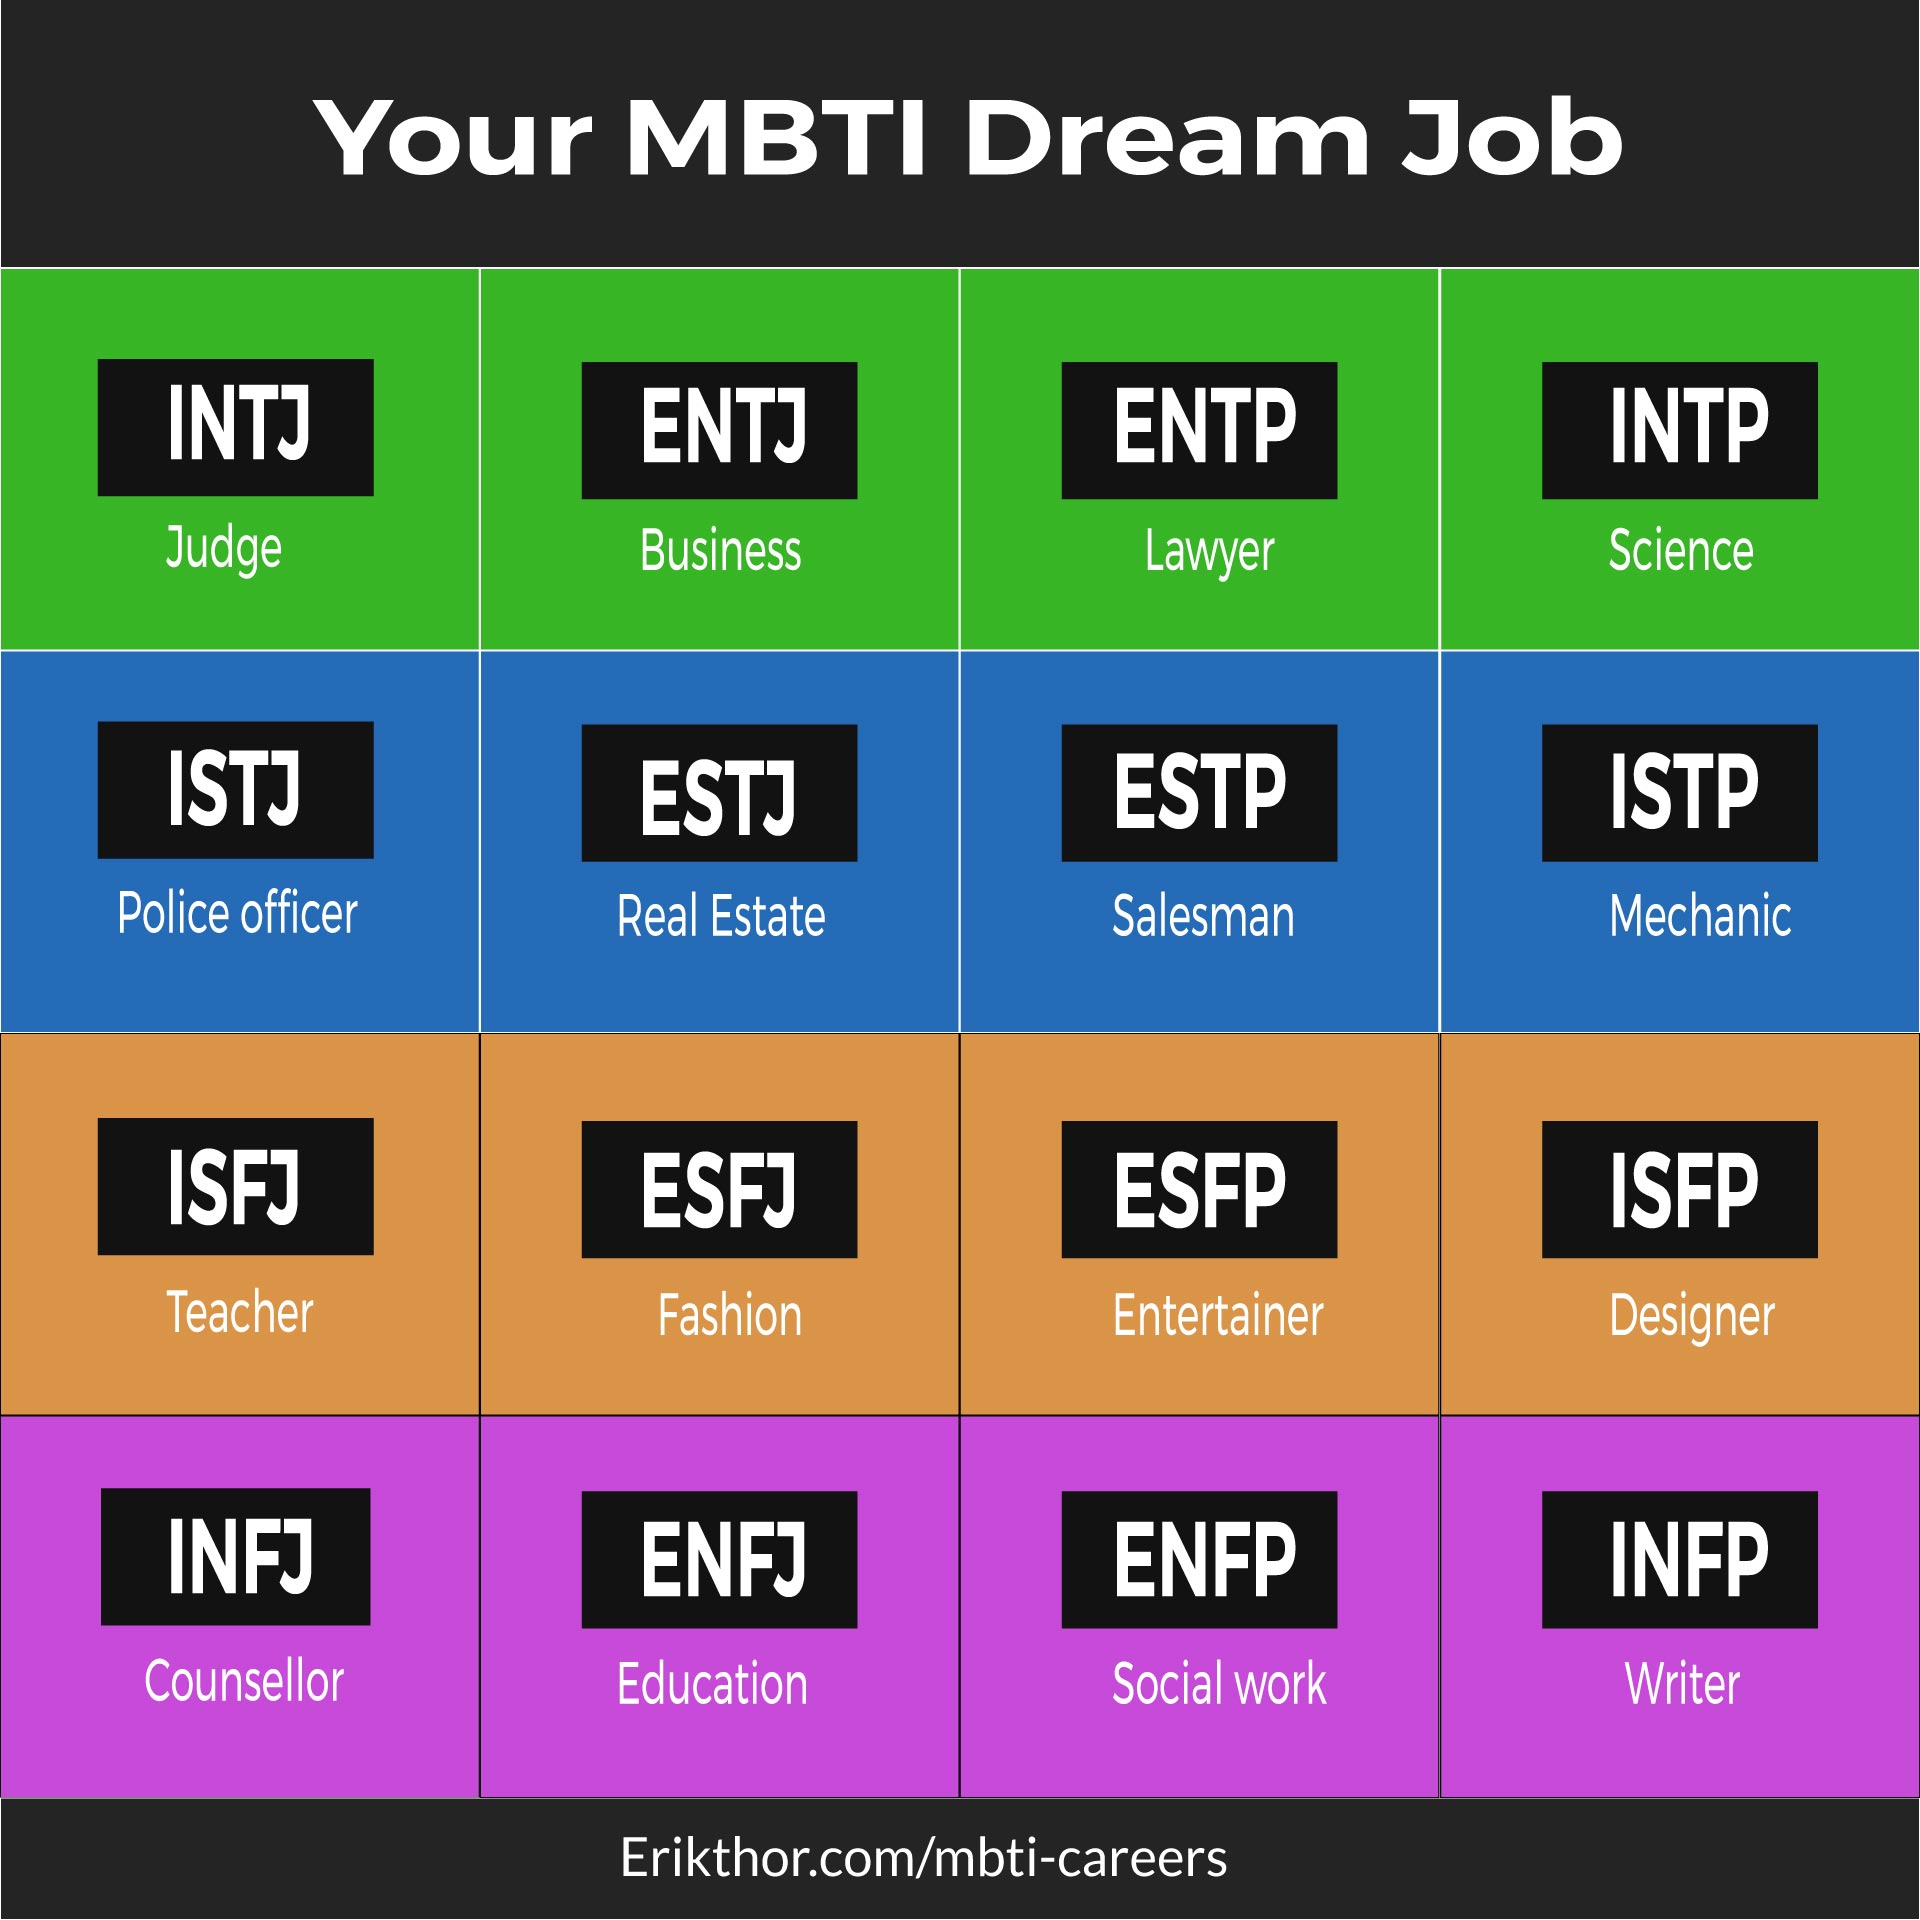 What is the best job for your personality type?